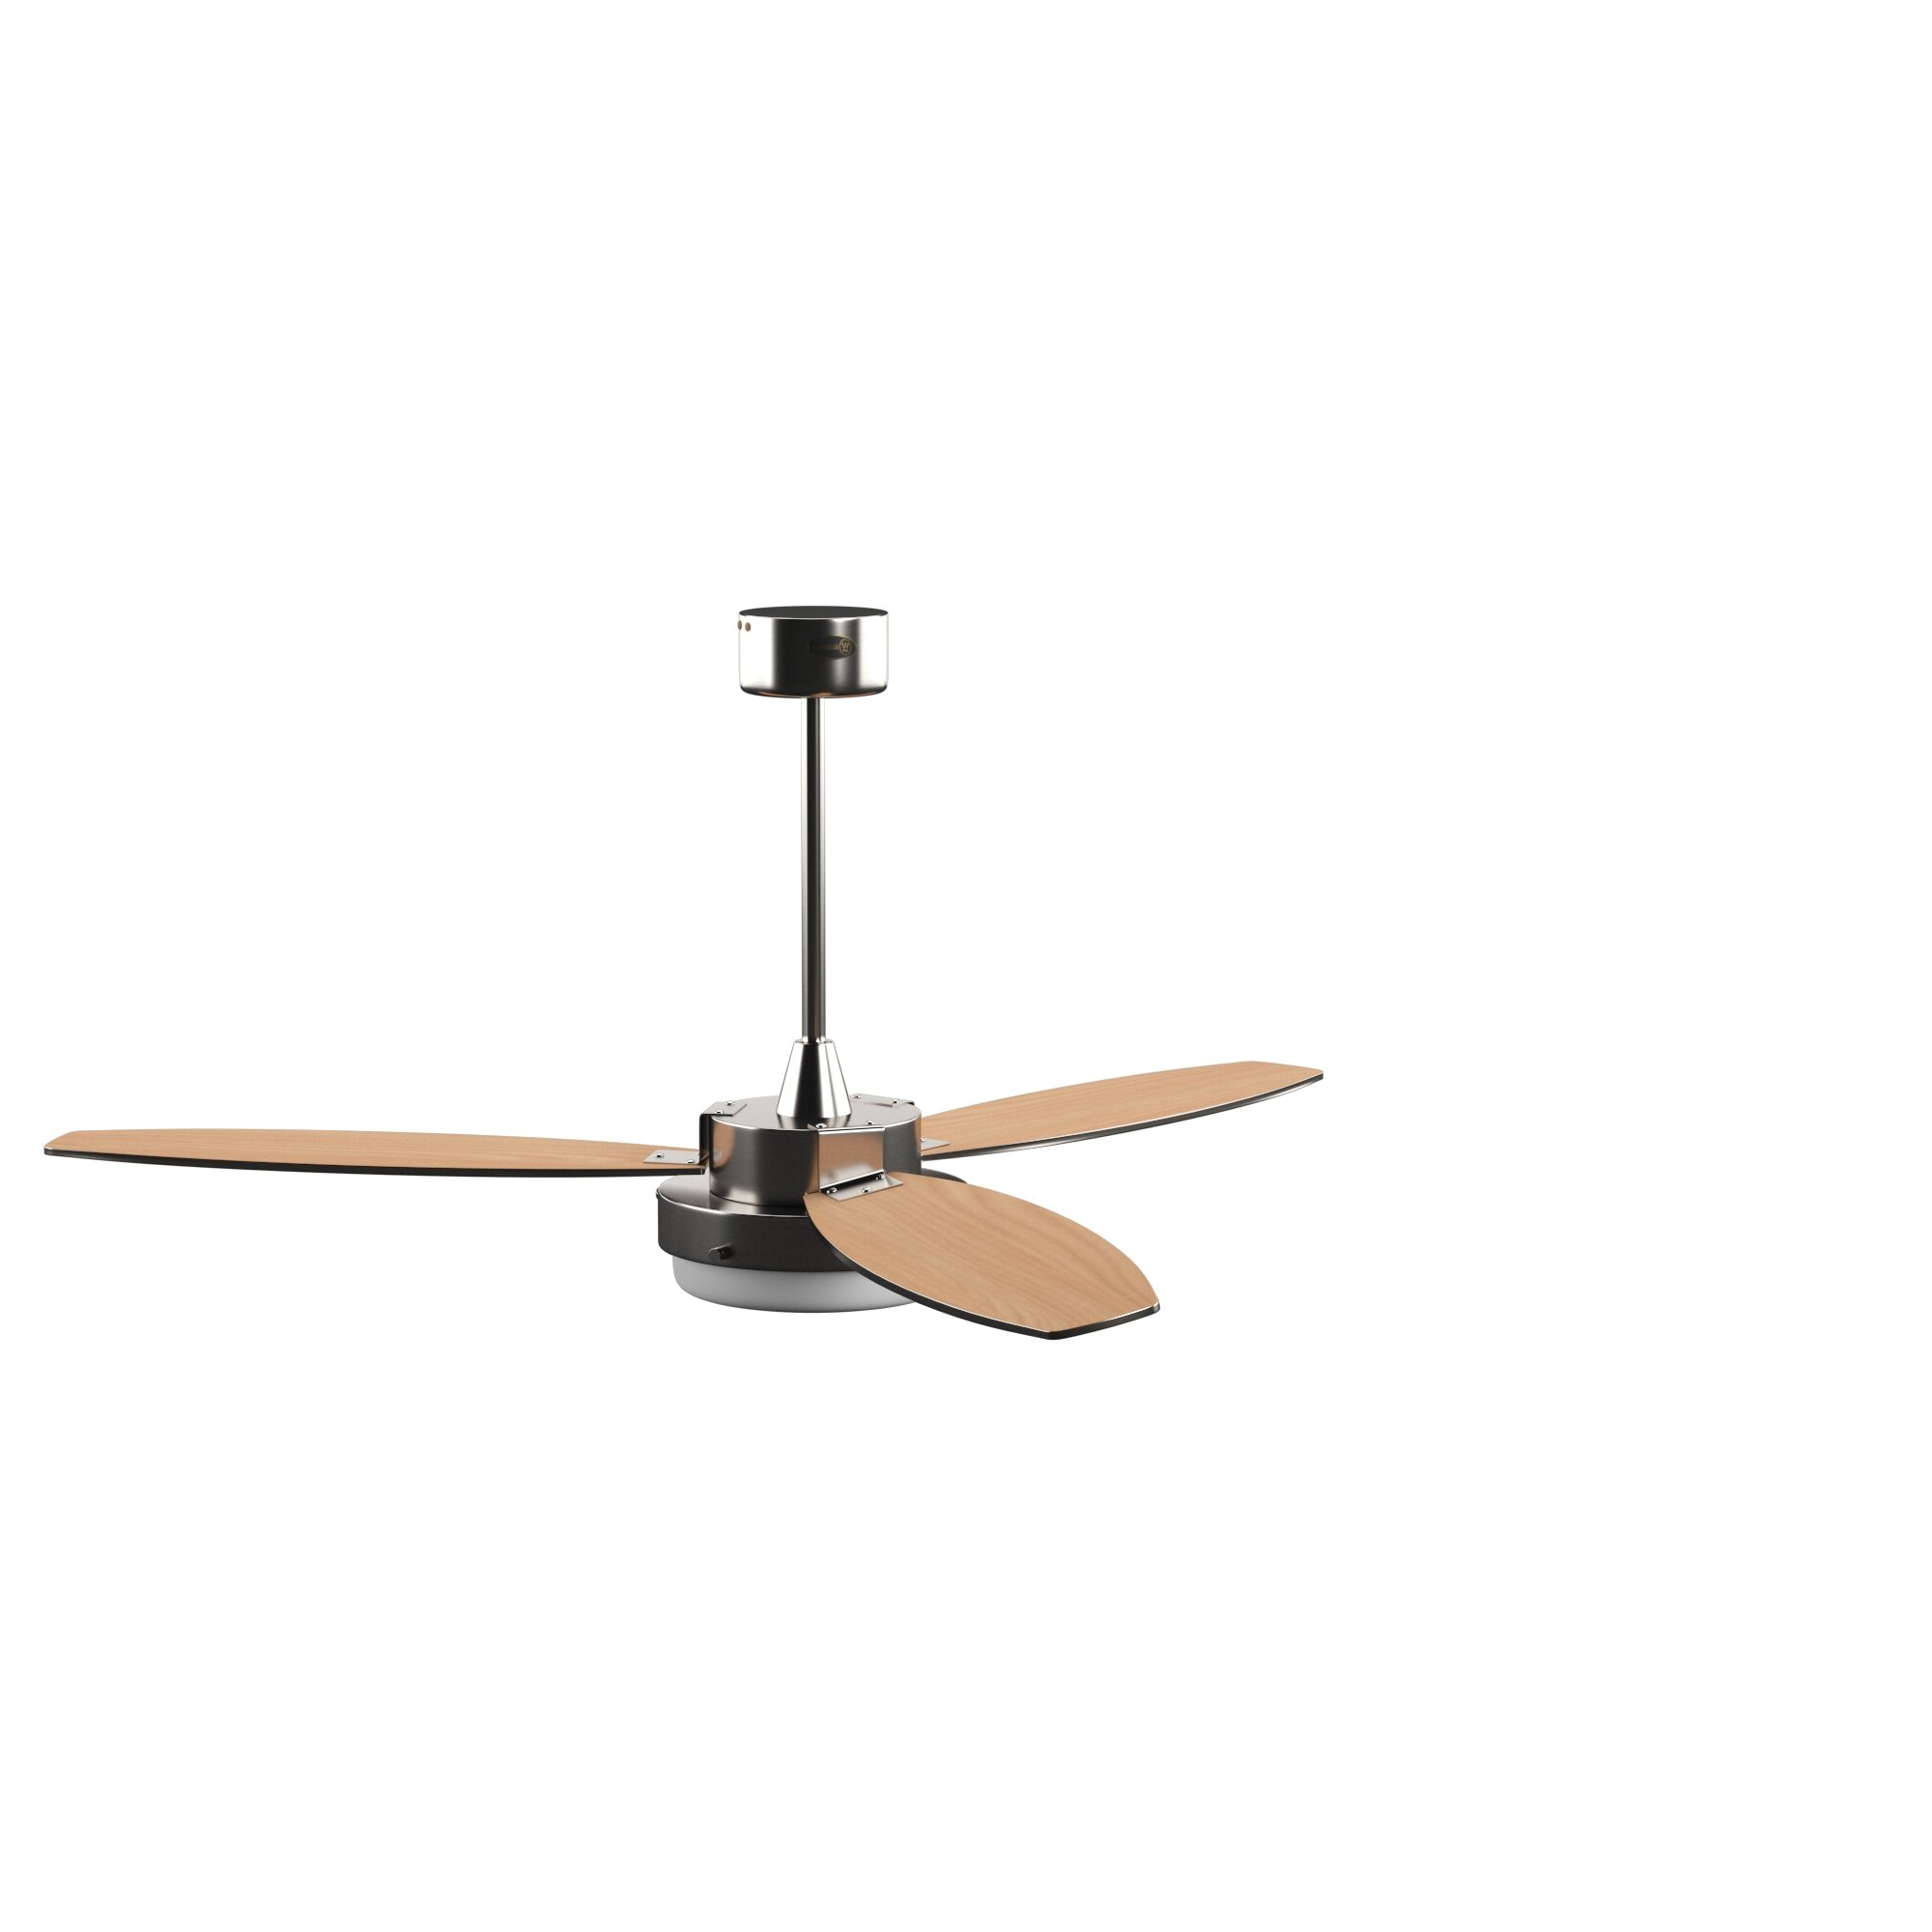 """Well Known 52"""" Corsa Two Light Reversible Plywood 3 Blade Ceiling Fan, Light Kit Included Intended For Troxler 3 Blade Ceiling Fans (View 13 of 20)"""